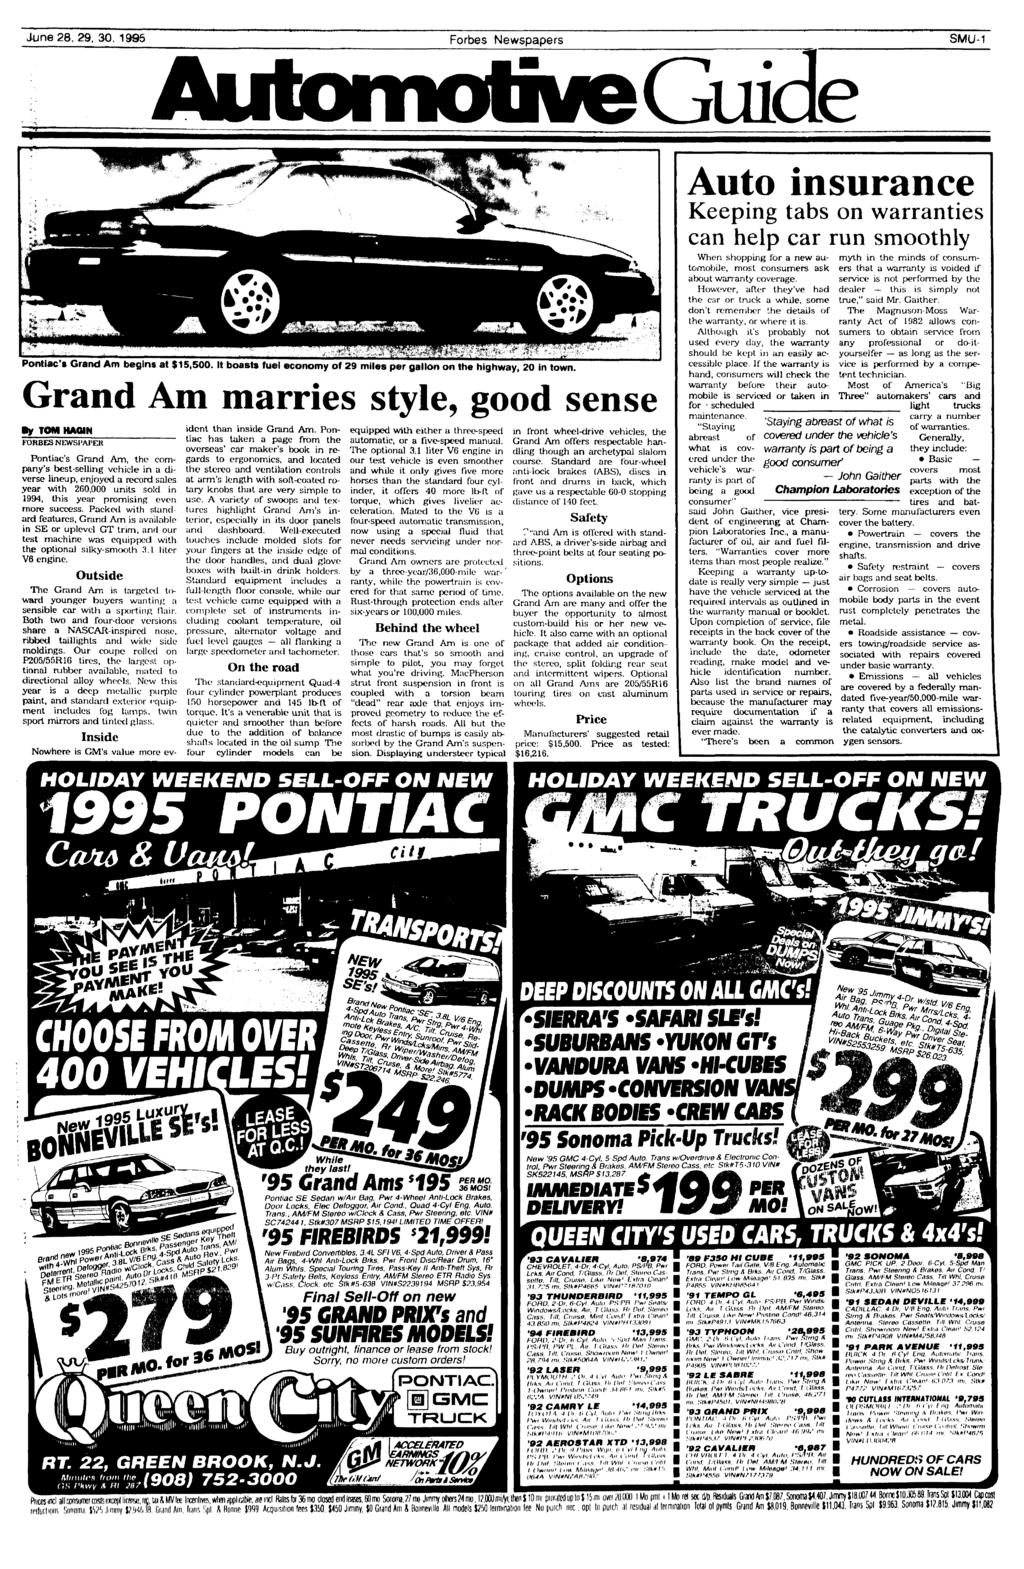 June 28, 29, 30, 1995 Forbes Newspapers SMU-1 Guide Pontiac's Grand Am begins at $15,500. t boasts fuel economy of 29 miles per gallon on the highway, 20 in town.